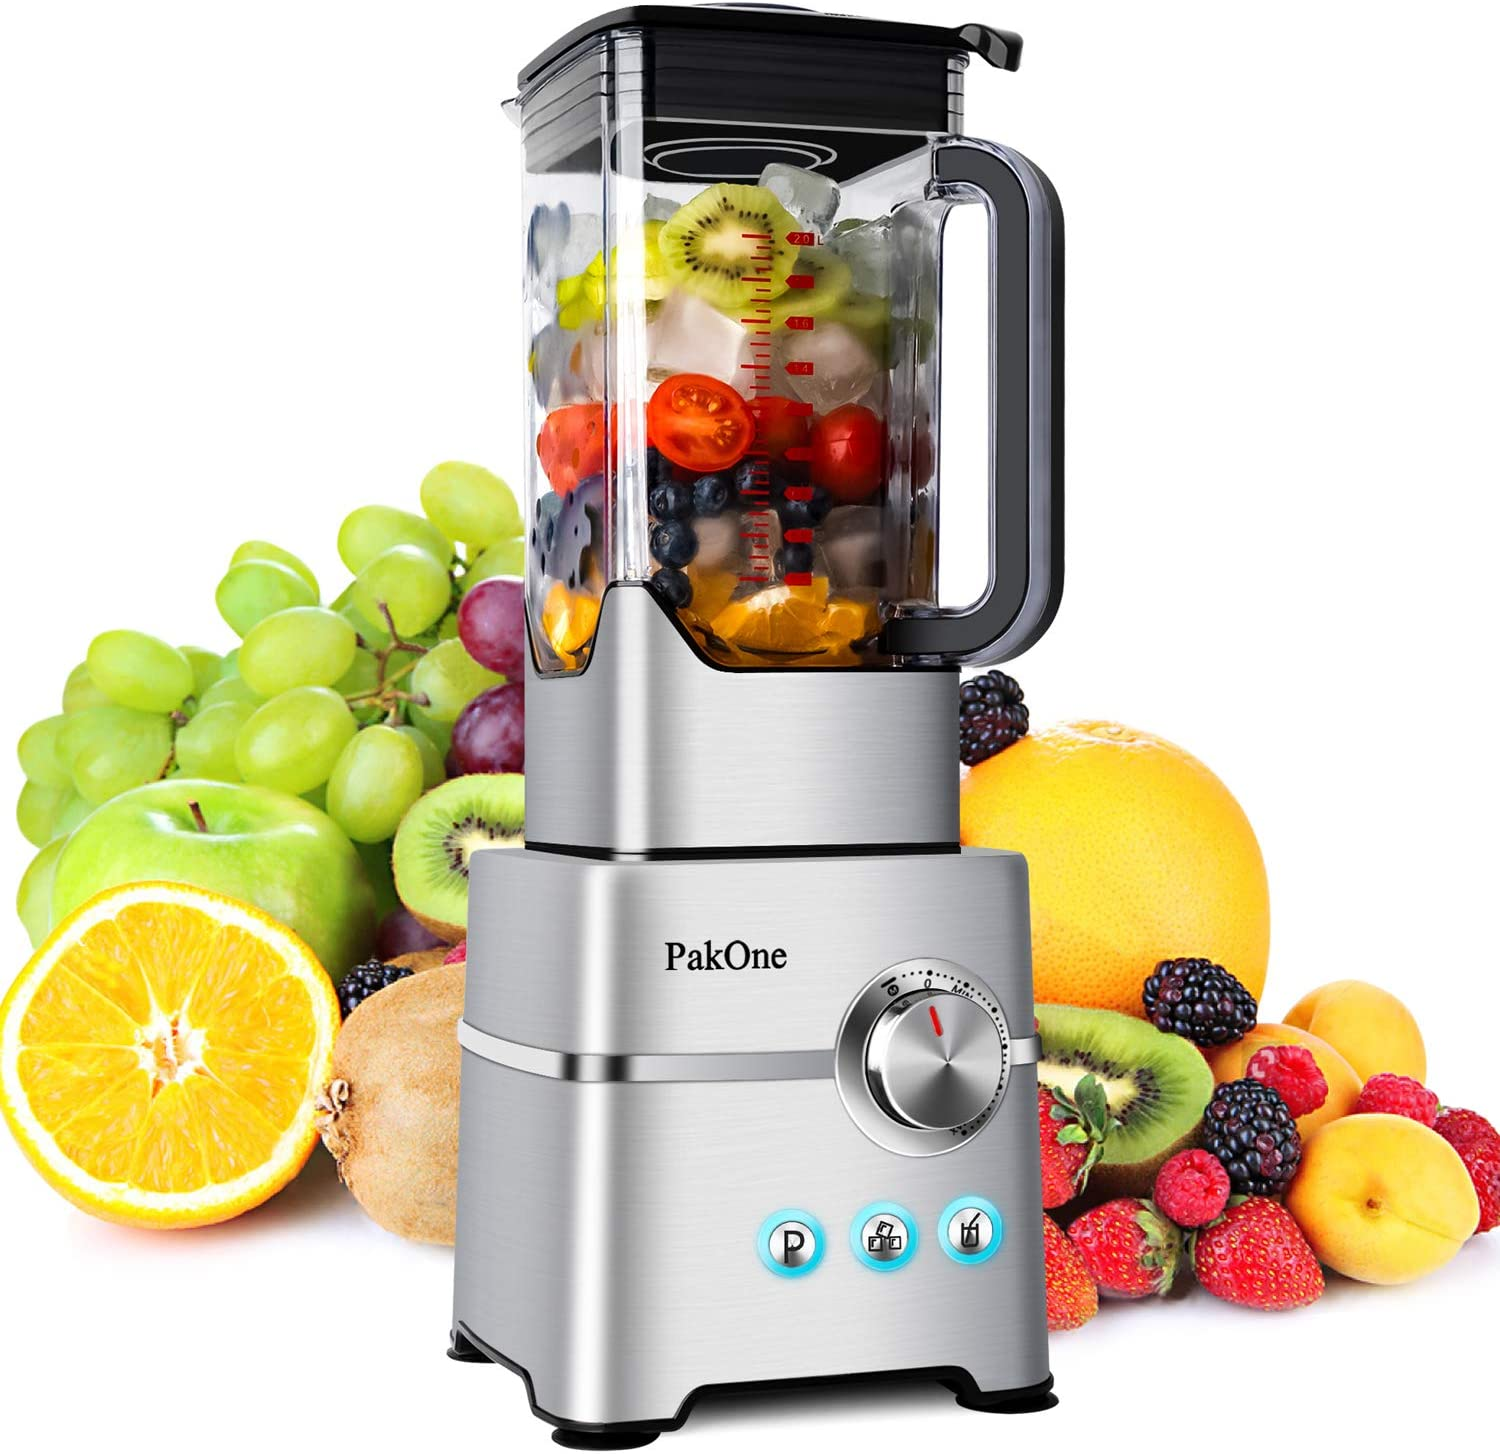 Countertop Smoothie Blenders for Kitchen-1800W Household Professional High Speed Shakes Blender 2L BPA Free Dishwasher-Safe Tritan Jug with 3 Blending Preset Programs and Total Speed Control Switch